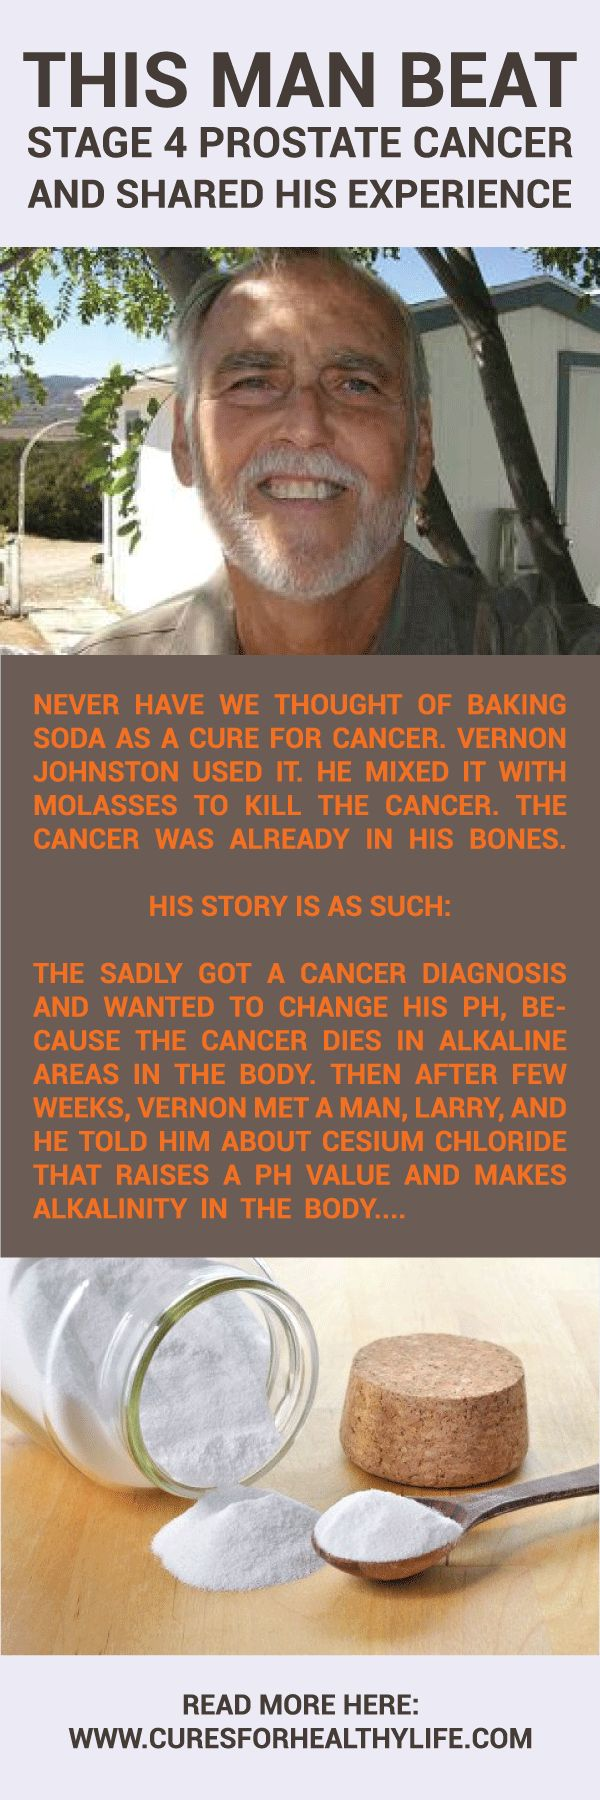 Never have we thought of baking soda as a cure for cancer. Vernon Johnston used it. He mixed it with molasses to kill the cancer. The cancer was already in his bones. HIS STORY IS AS SUCH: The sadly got a cancer diagnosis and wanted to change his pH, because the cancer dies in alkaline Continue Reading